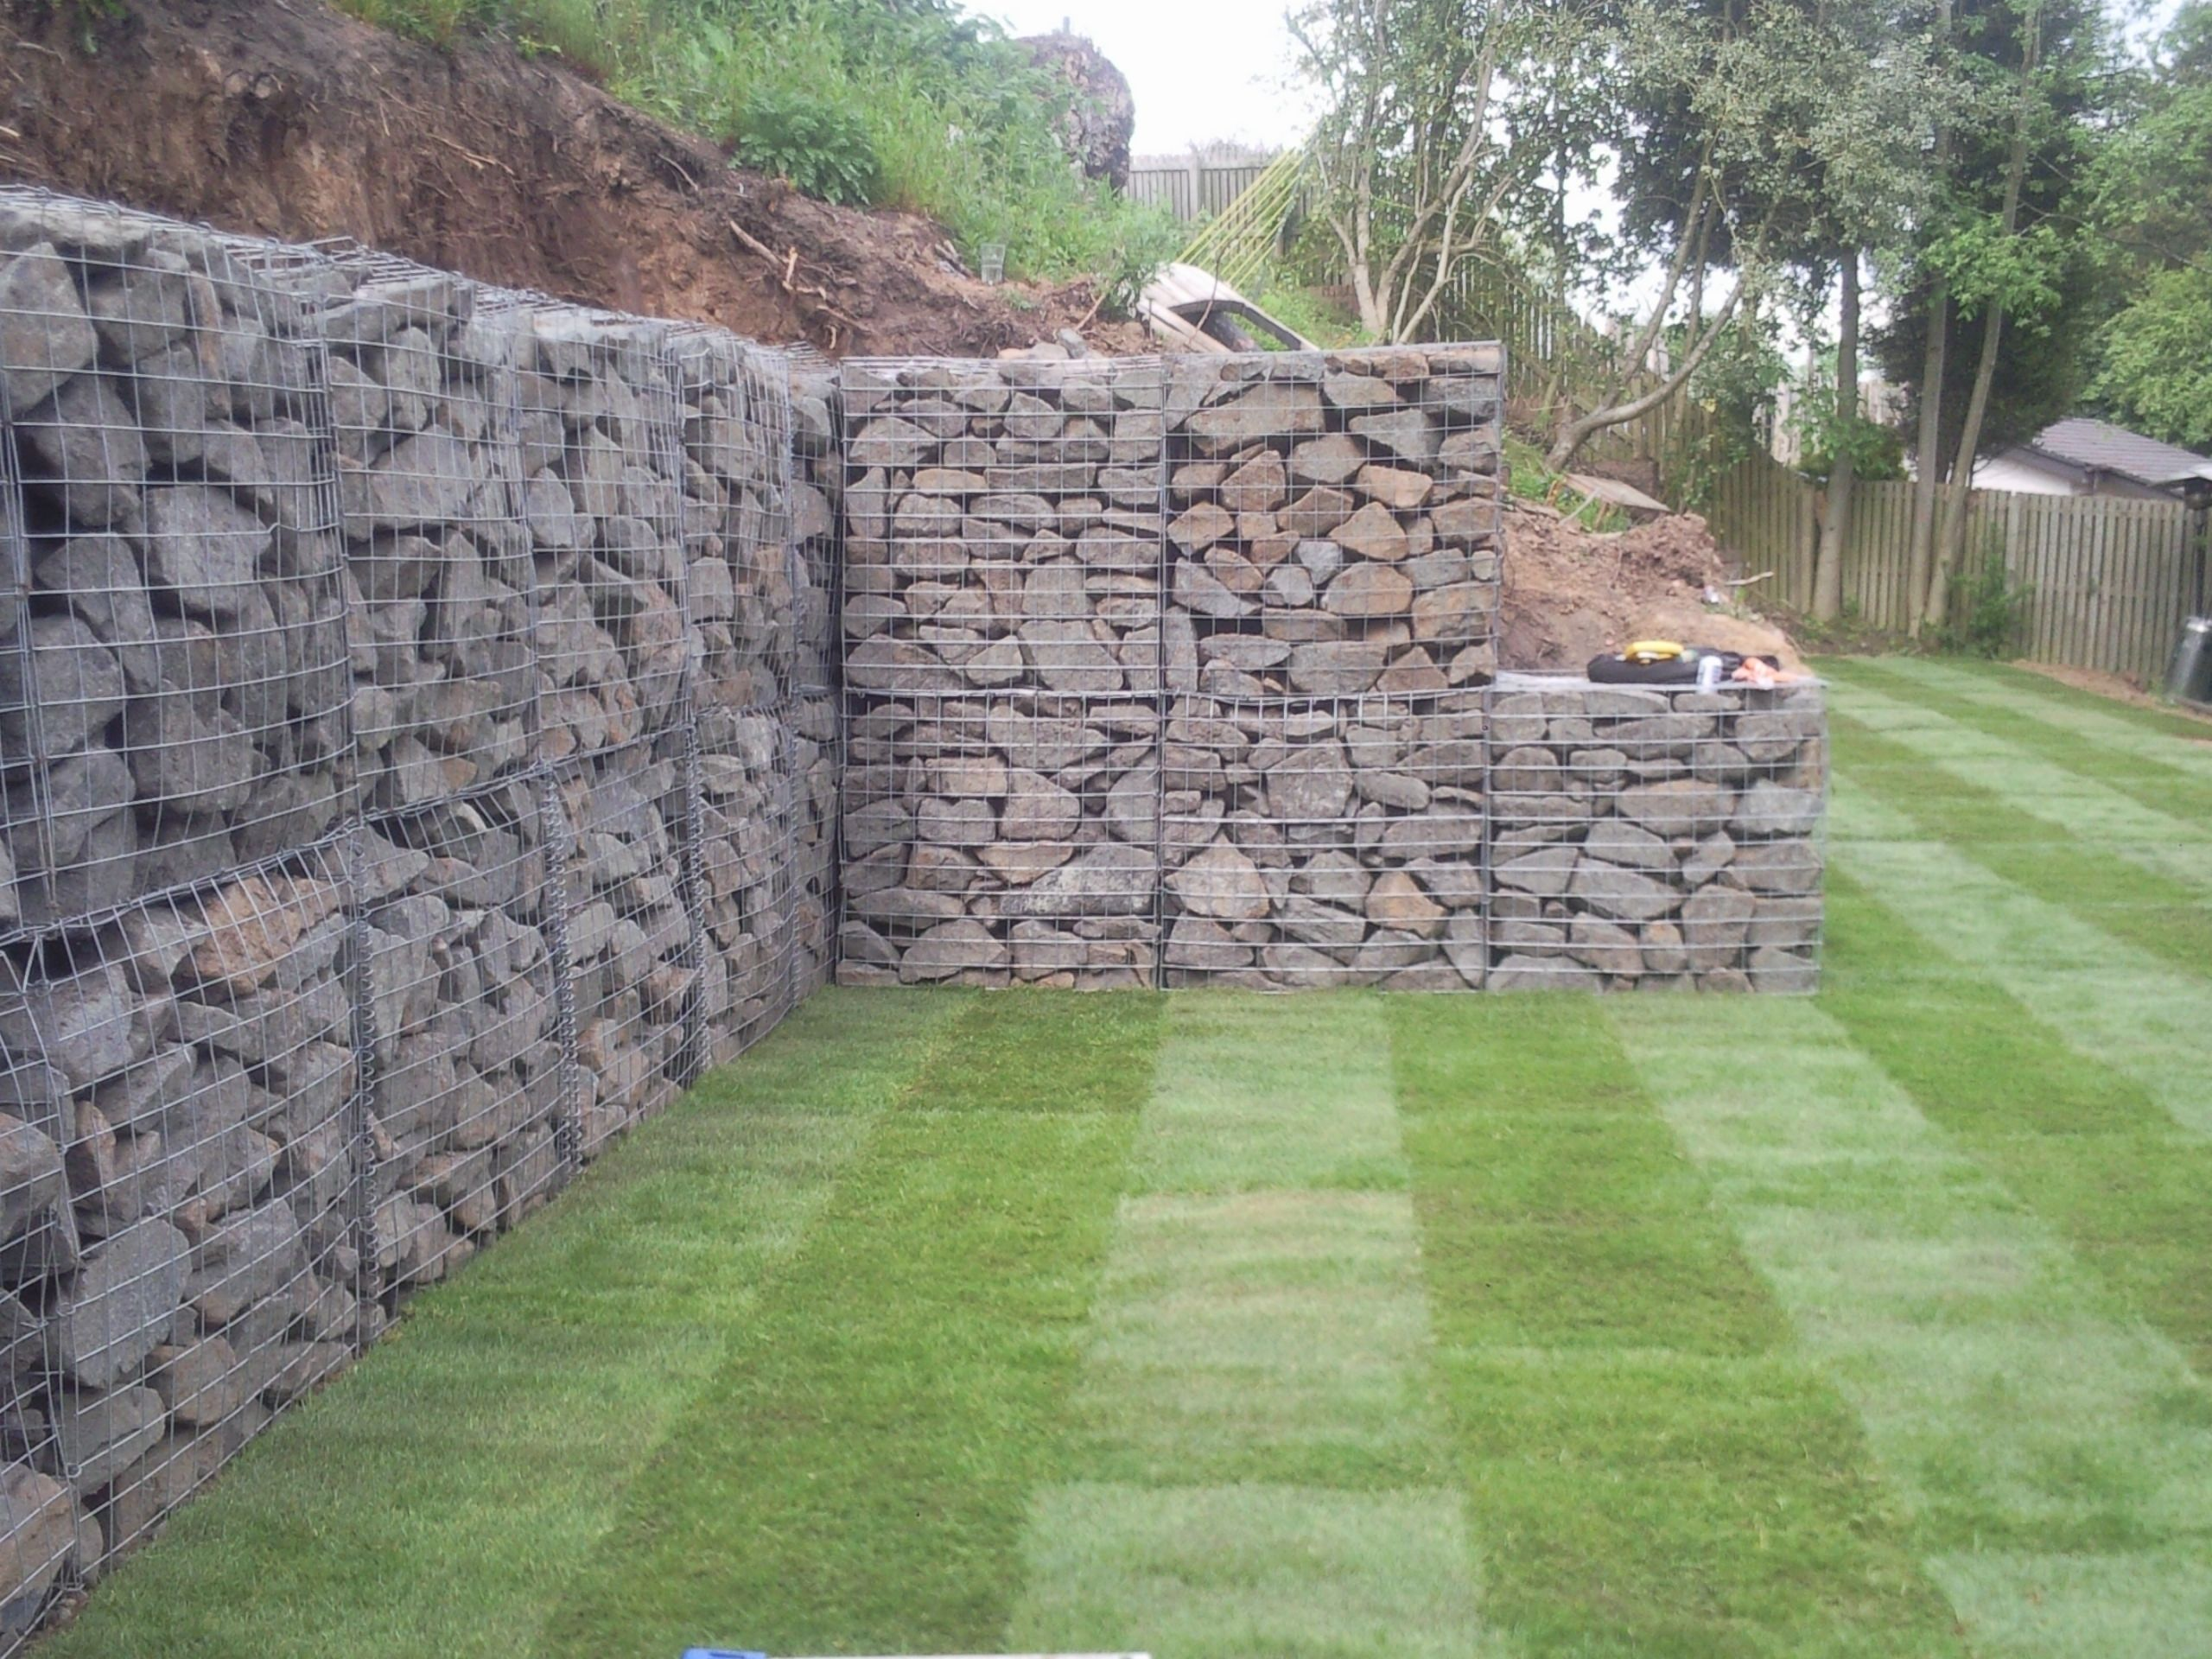 gaviones decorativos mil anuncios com para piedras 134526673 3 natural stones on strong iron gabion baskets as retaining wall for  landscape architecture ideas